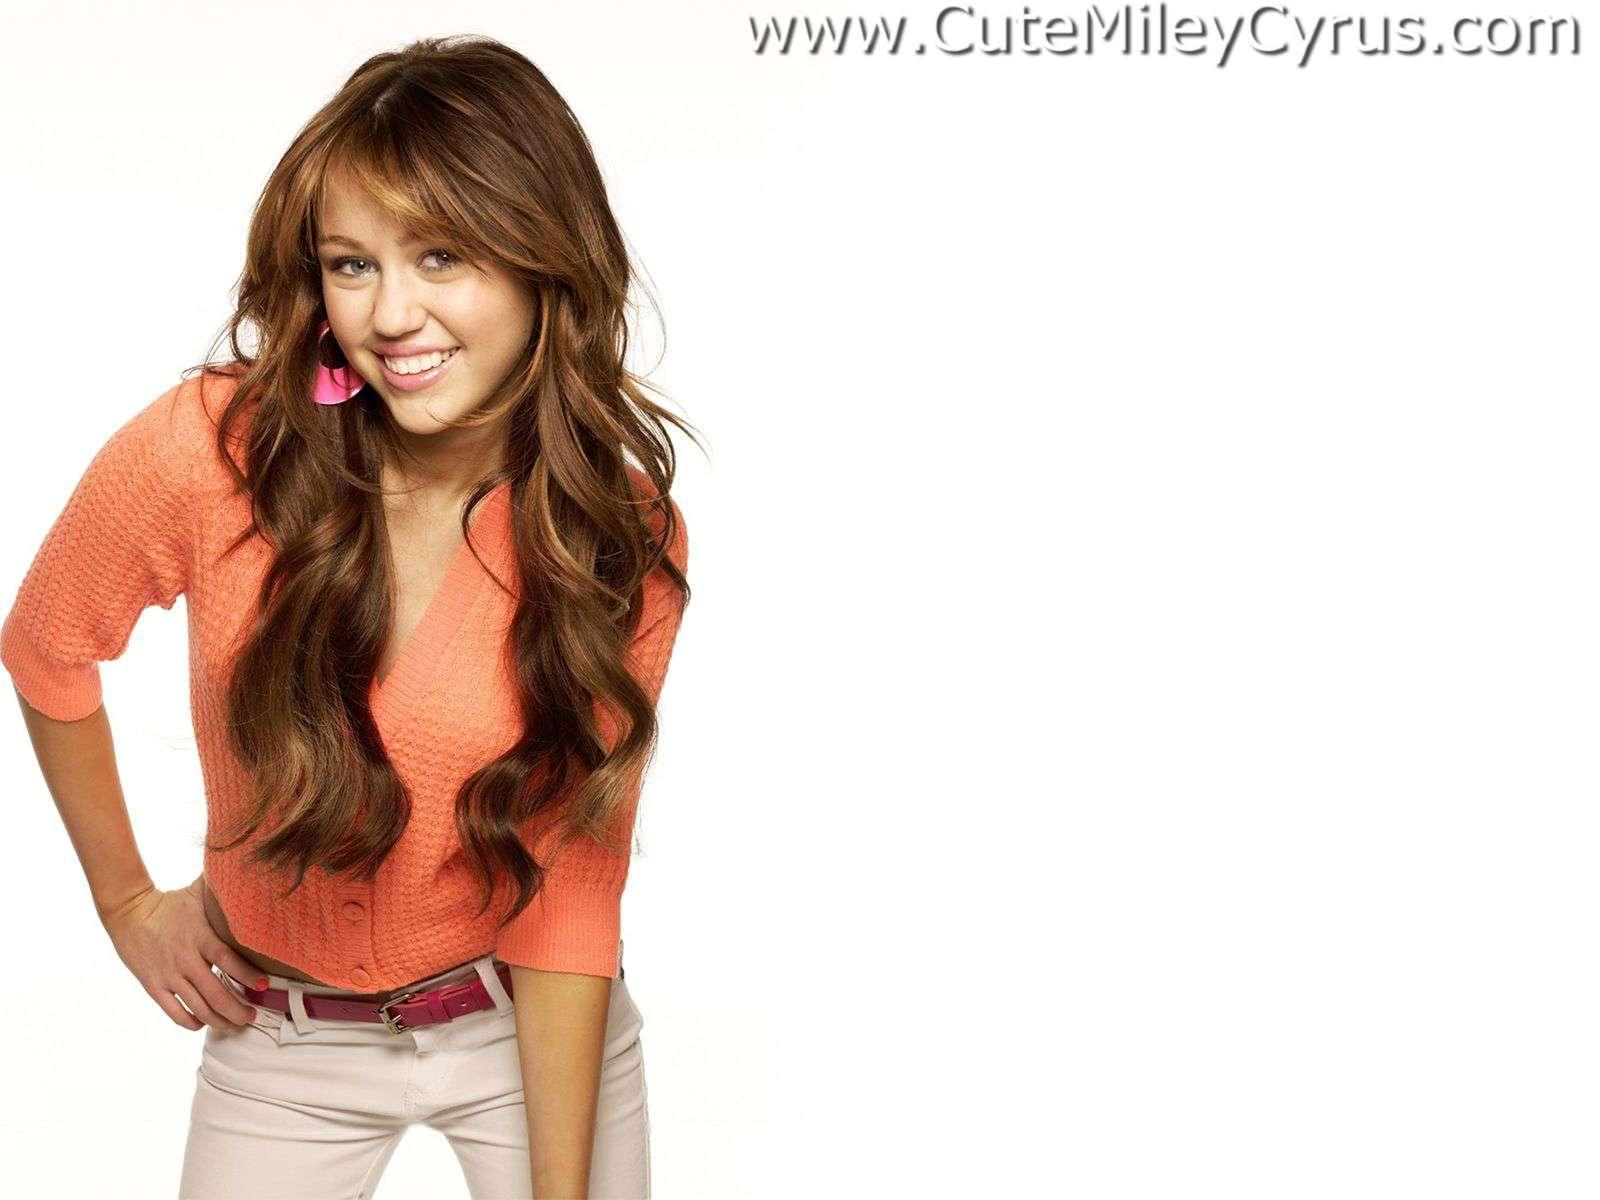 Women miley cyrus Celebrity HD Wallpaper